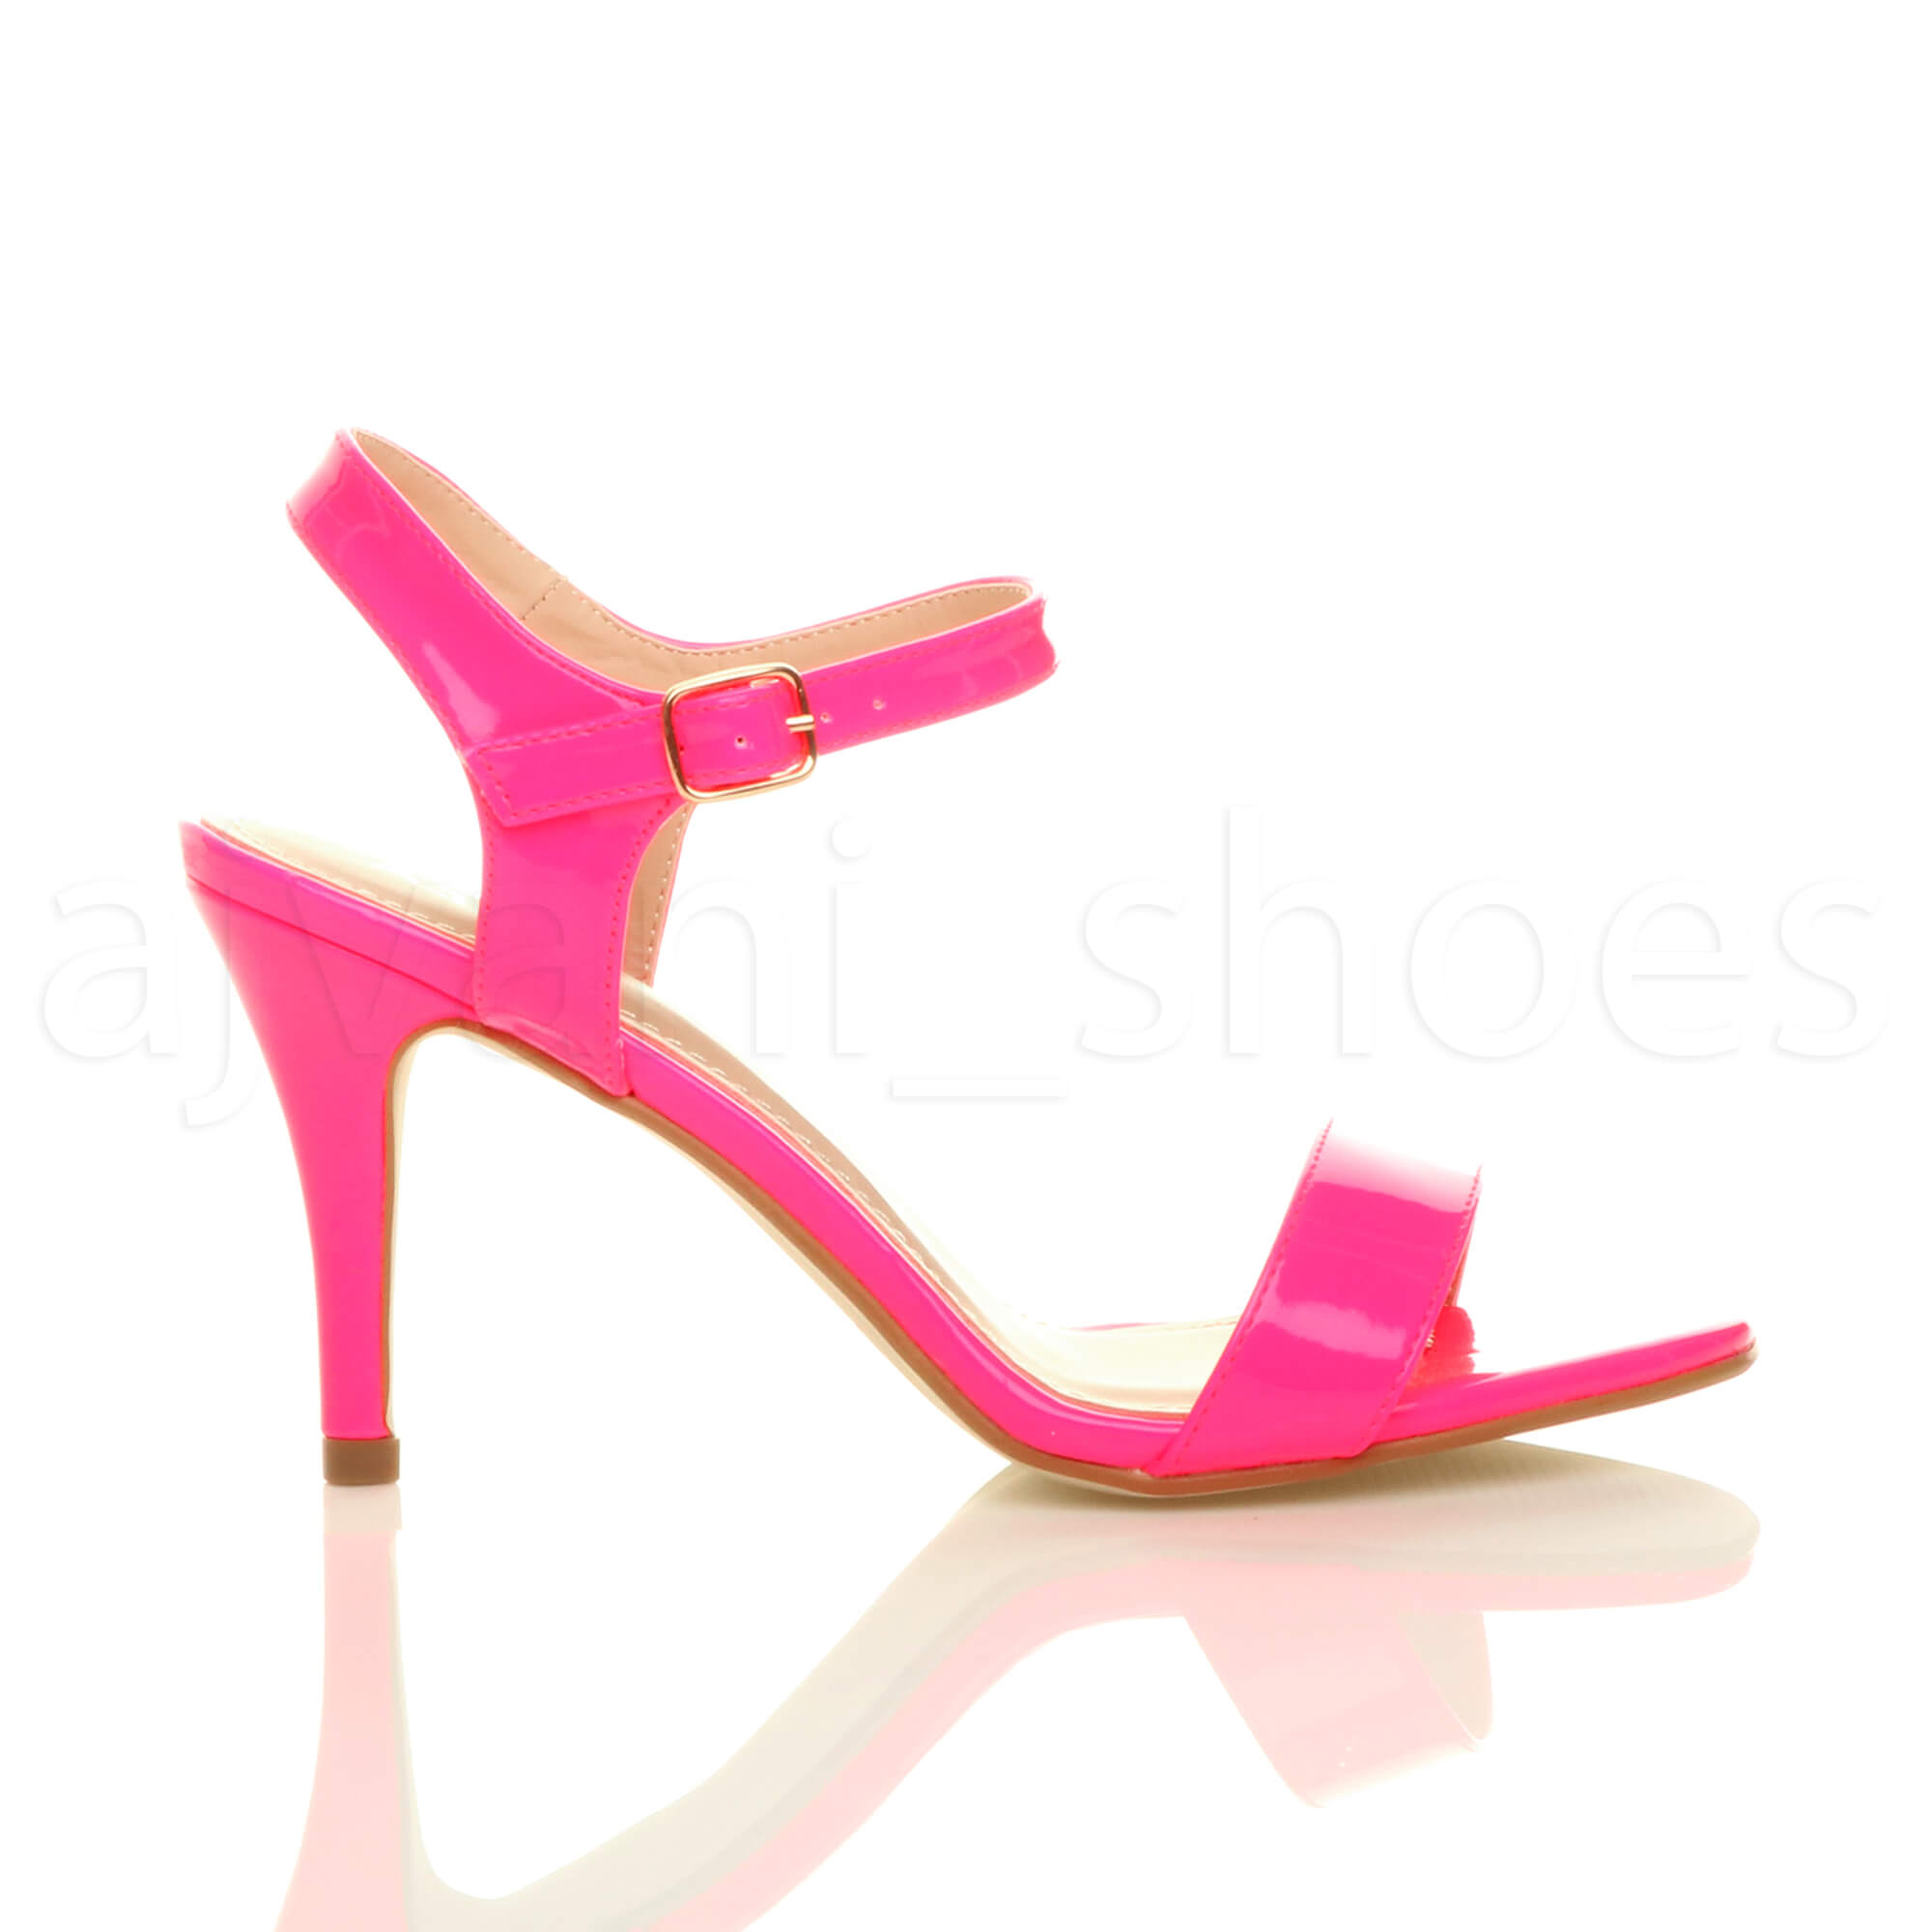 WOMENS-LADIES-HIGH-HEEL-BUCKLE-STRAPPY-BASIC-BARELY-THERE-SANDALS-SHOES-SIZE thumbnail 80